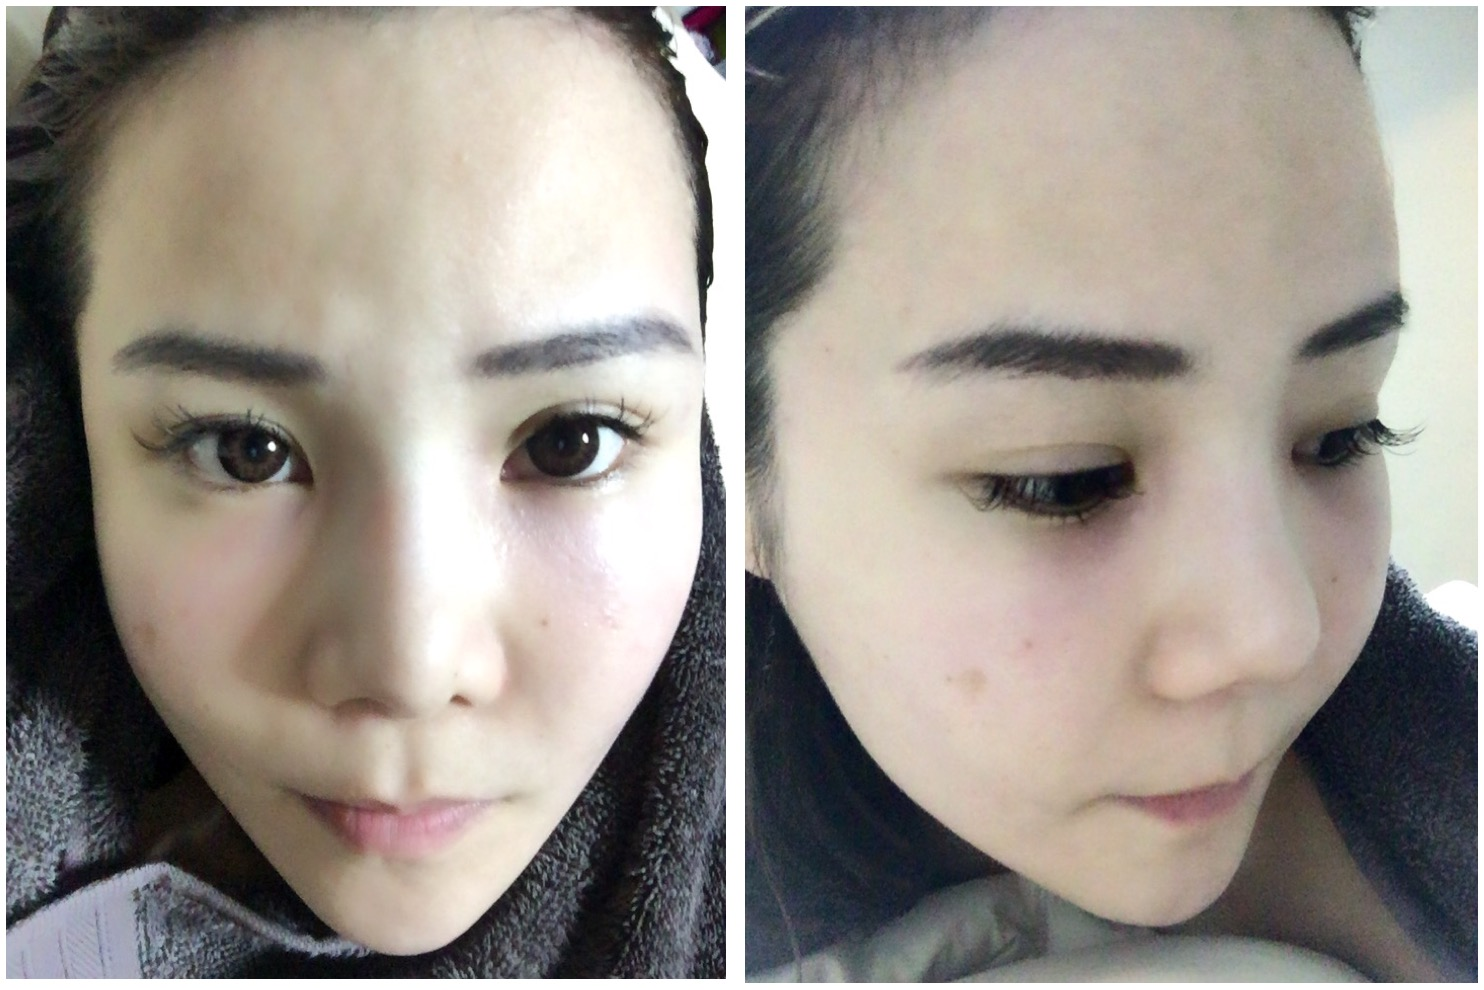 Taiwan Trip : Aesthetic treatments @ iStyle Aesthetic Clinic